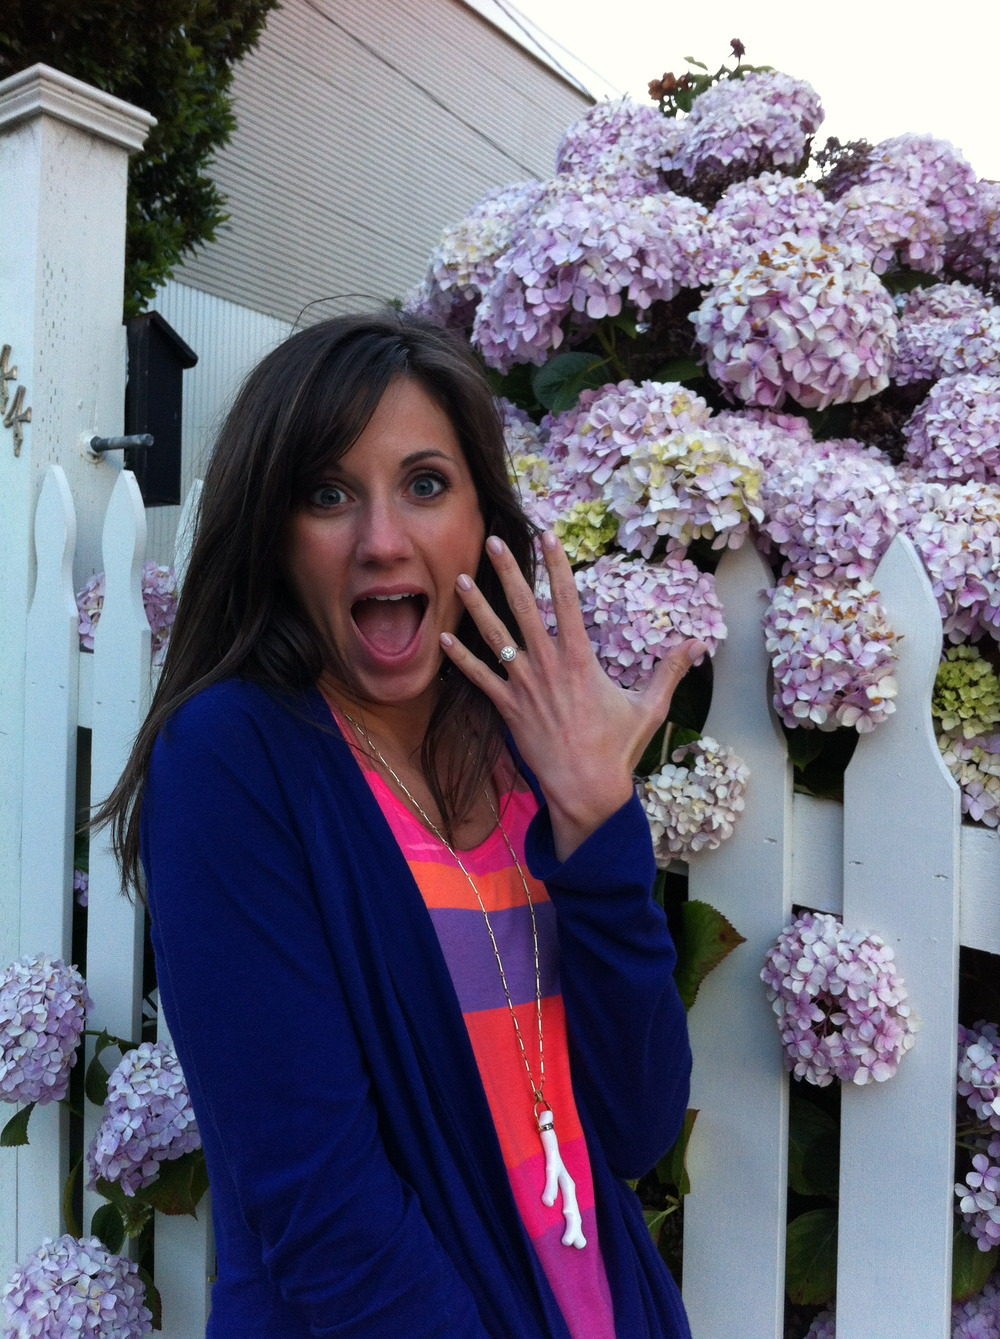 Pictured in San Francisco, three months after Woody's proposal, I was still very excited to wear his ring!